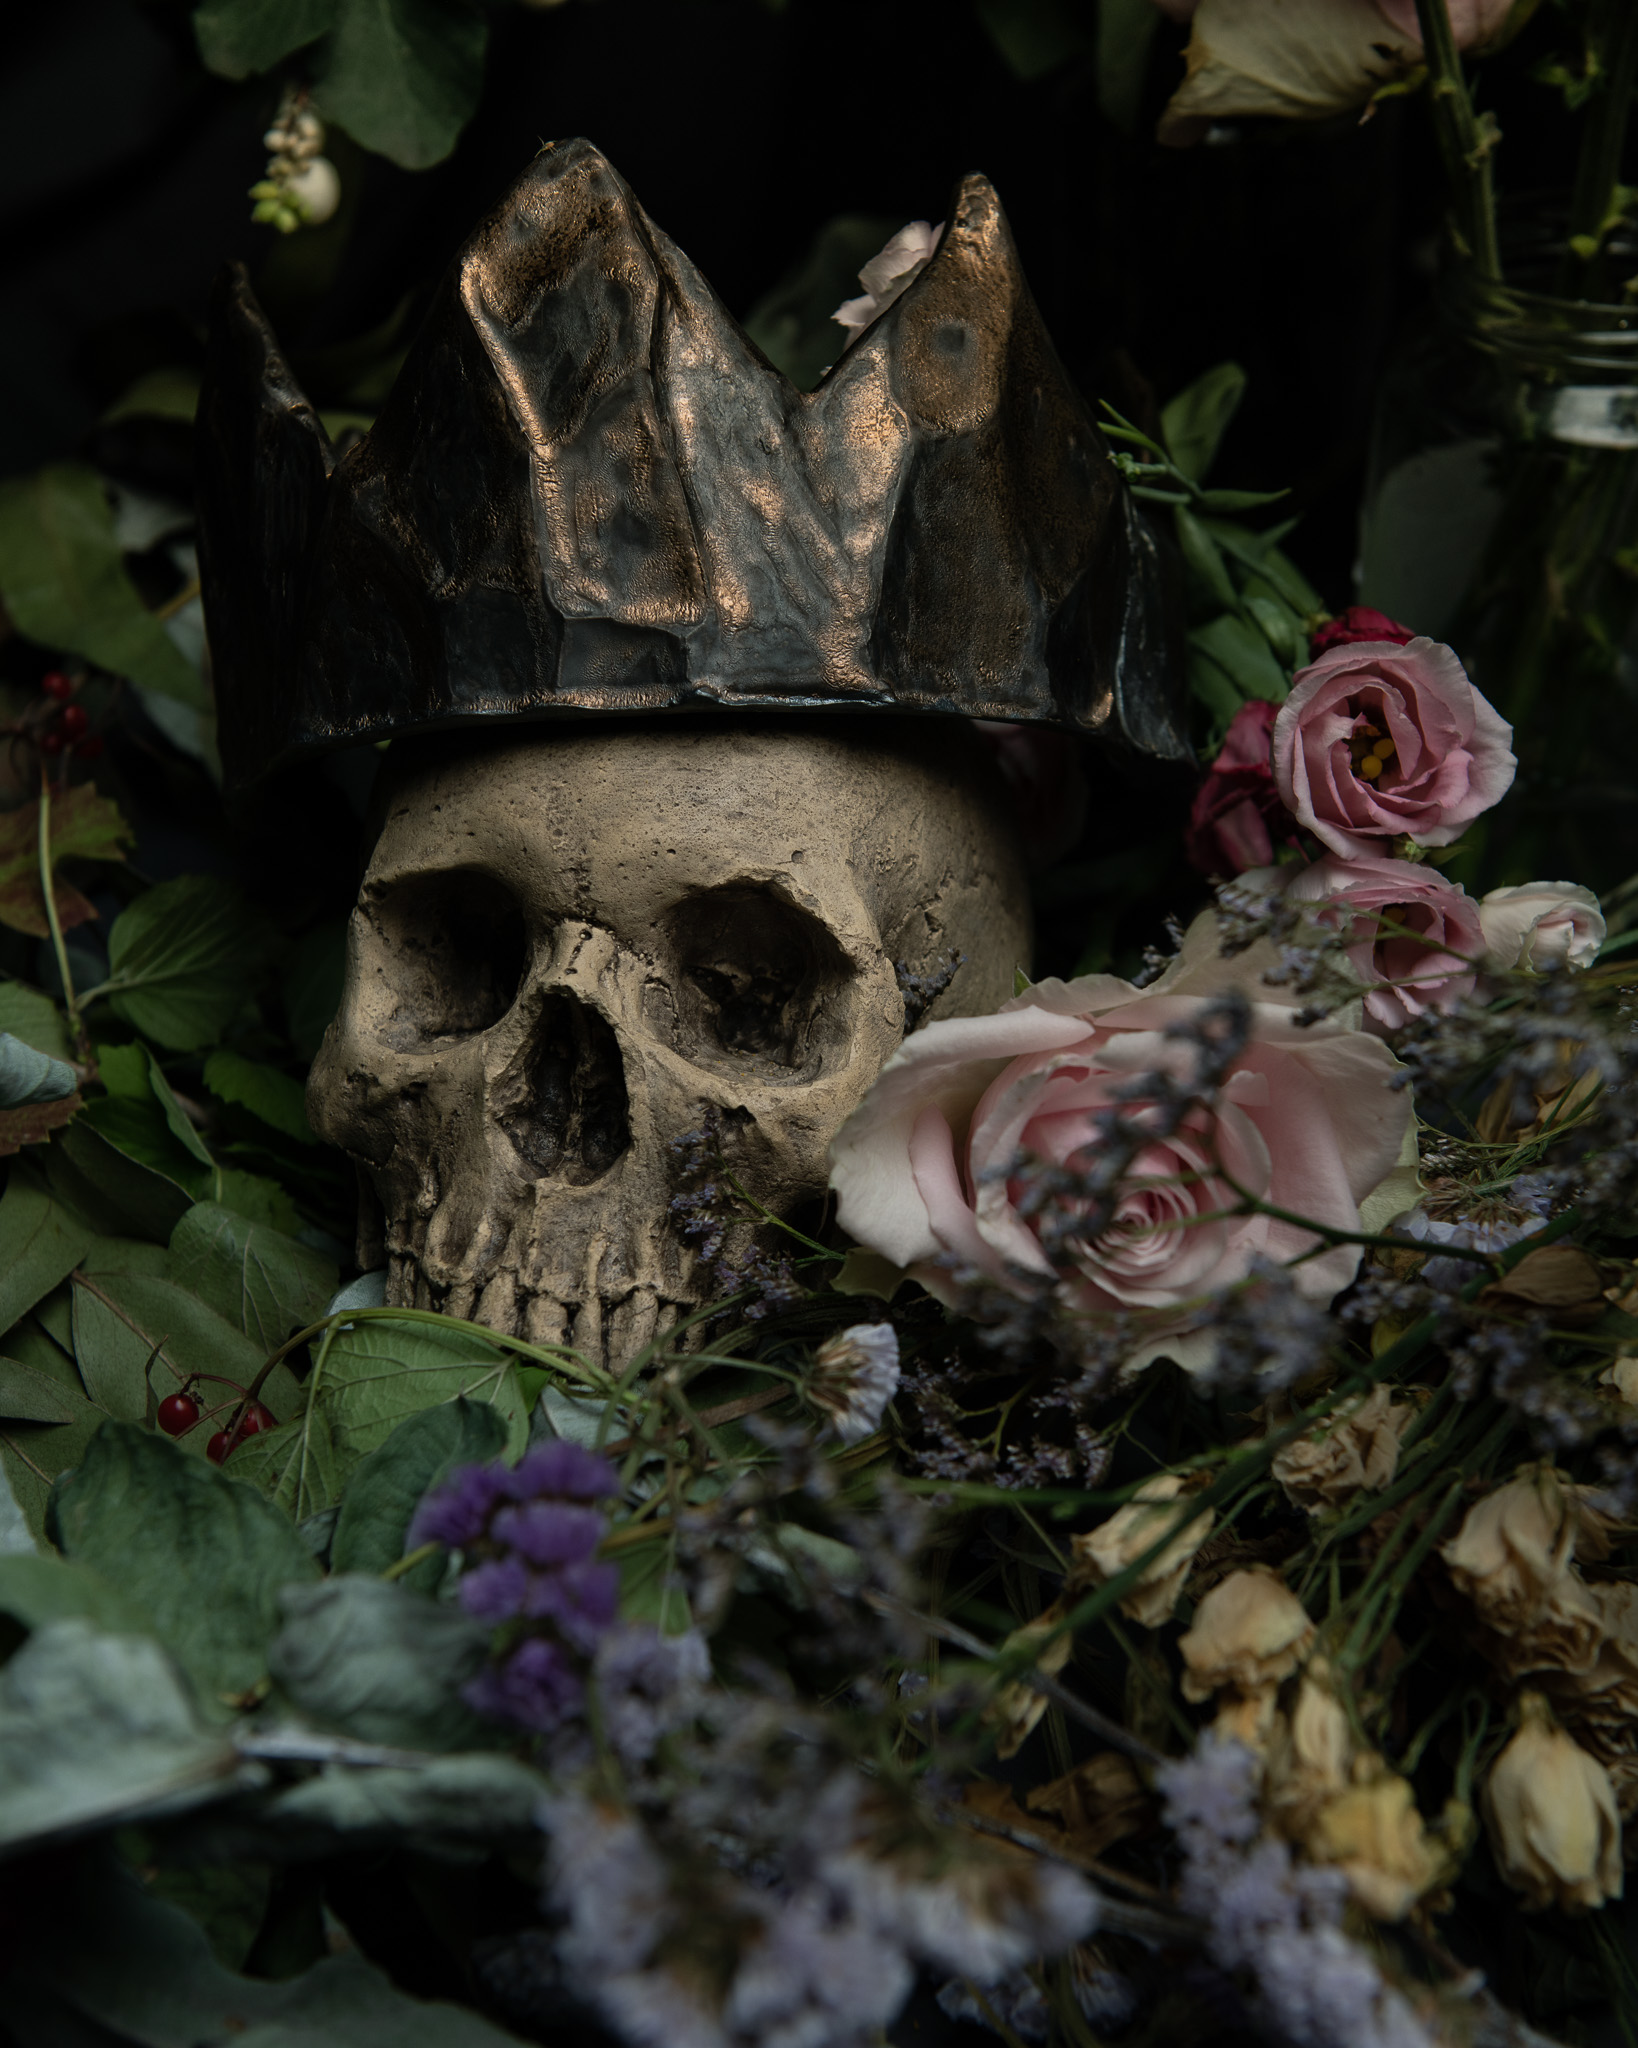 Arrangement of flowers, crown and skull